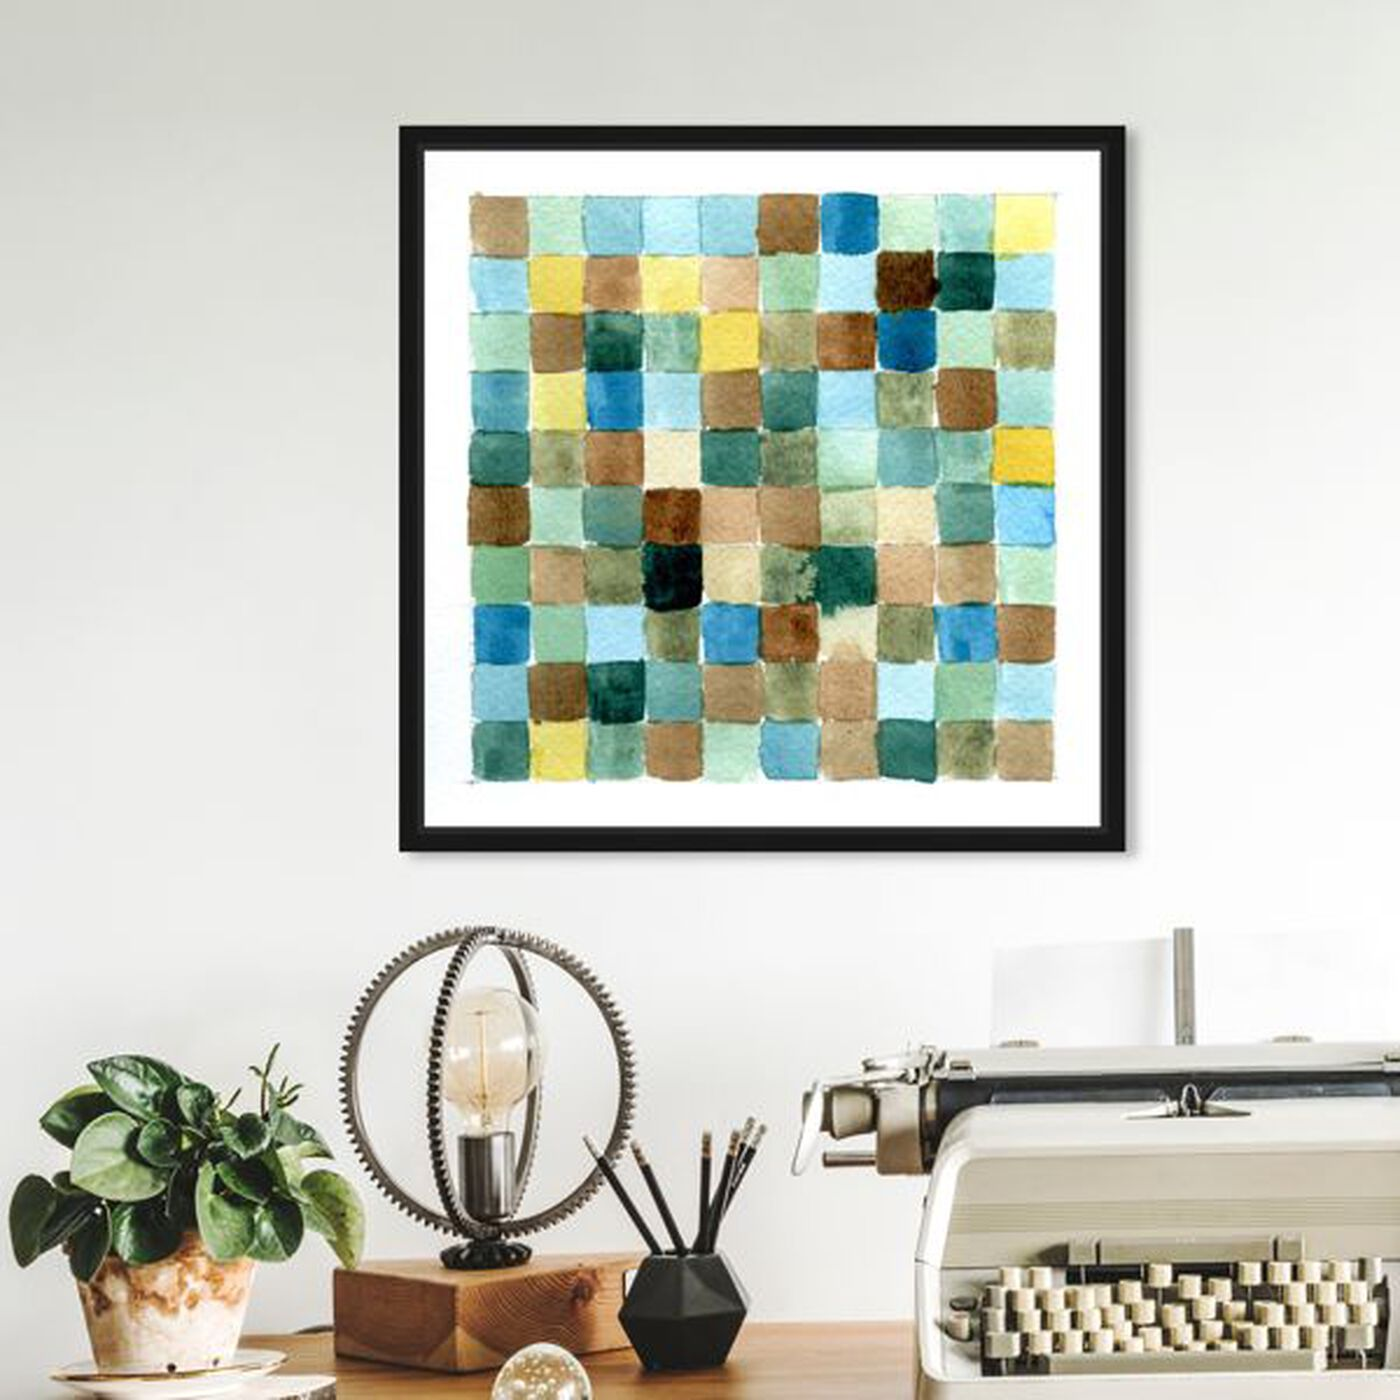 Hanging view of Quadratum Ad Oceanum featuring abstract and geometric art.